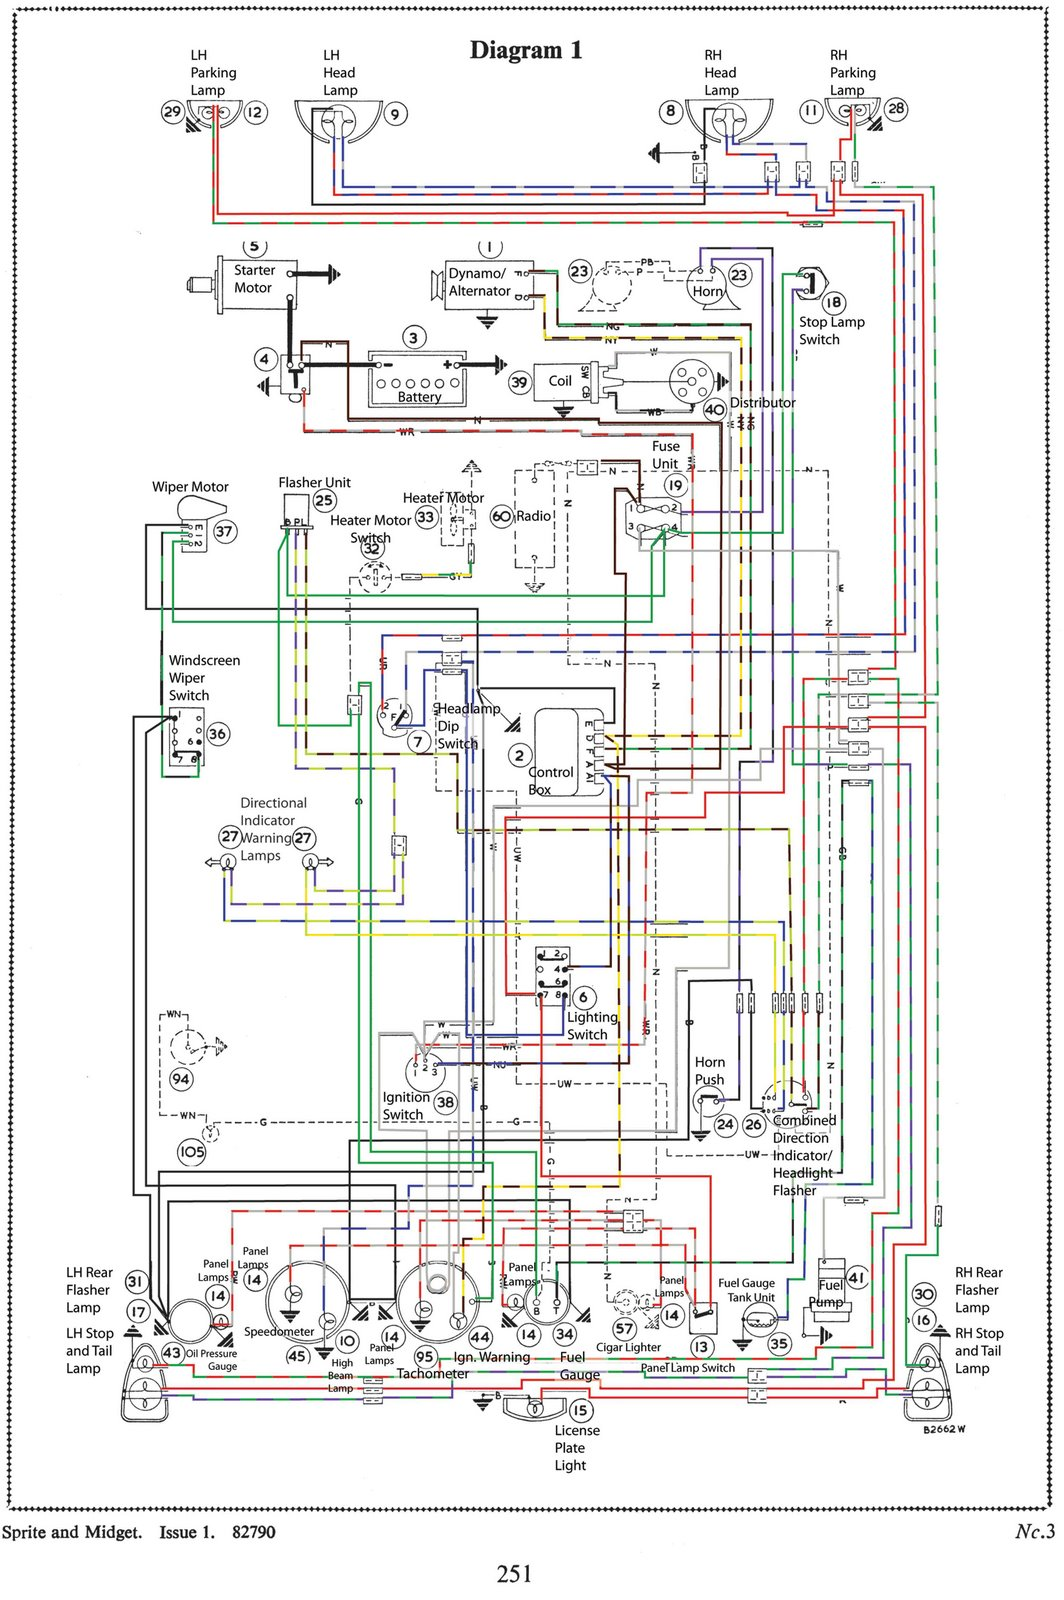 medium resolution of 1975 mgb fuse box search for wiring diagrams u2022 rh stephenpoon co 2002 ford ranger fuse chart electrical fuse